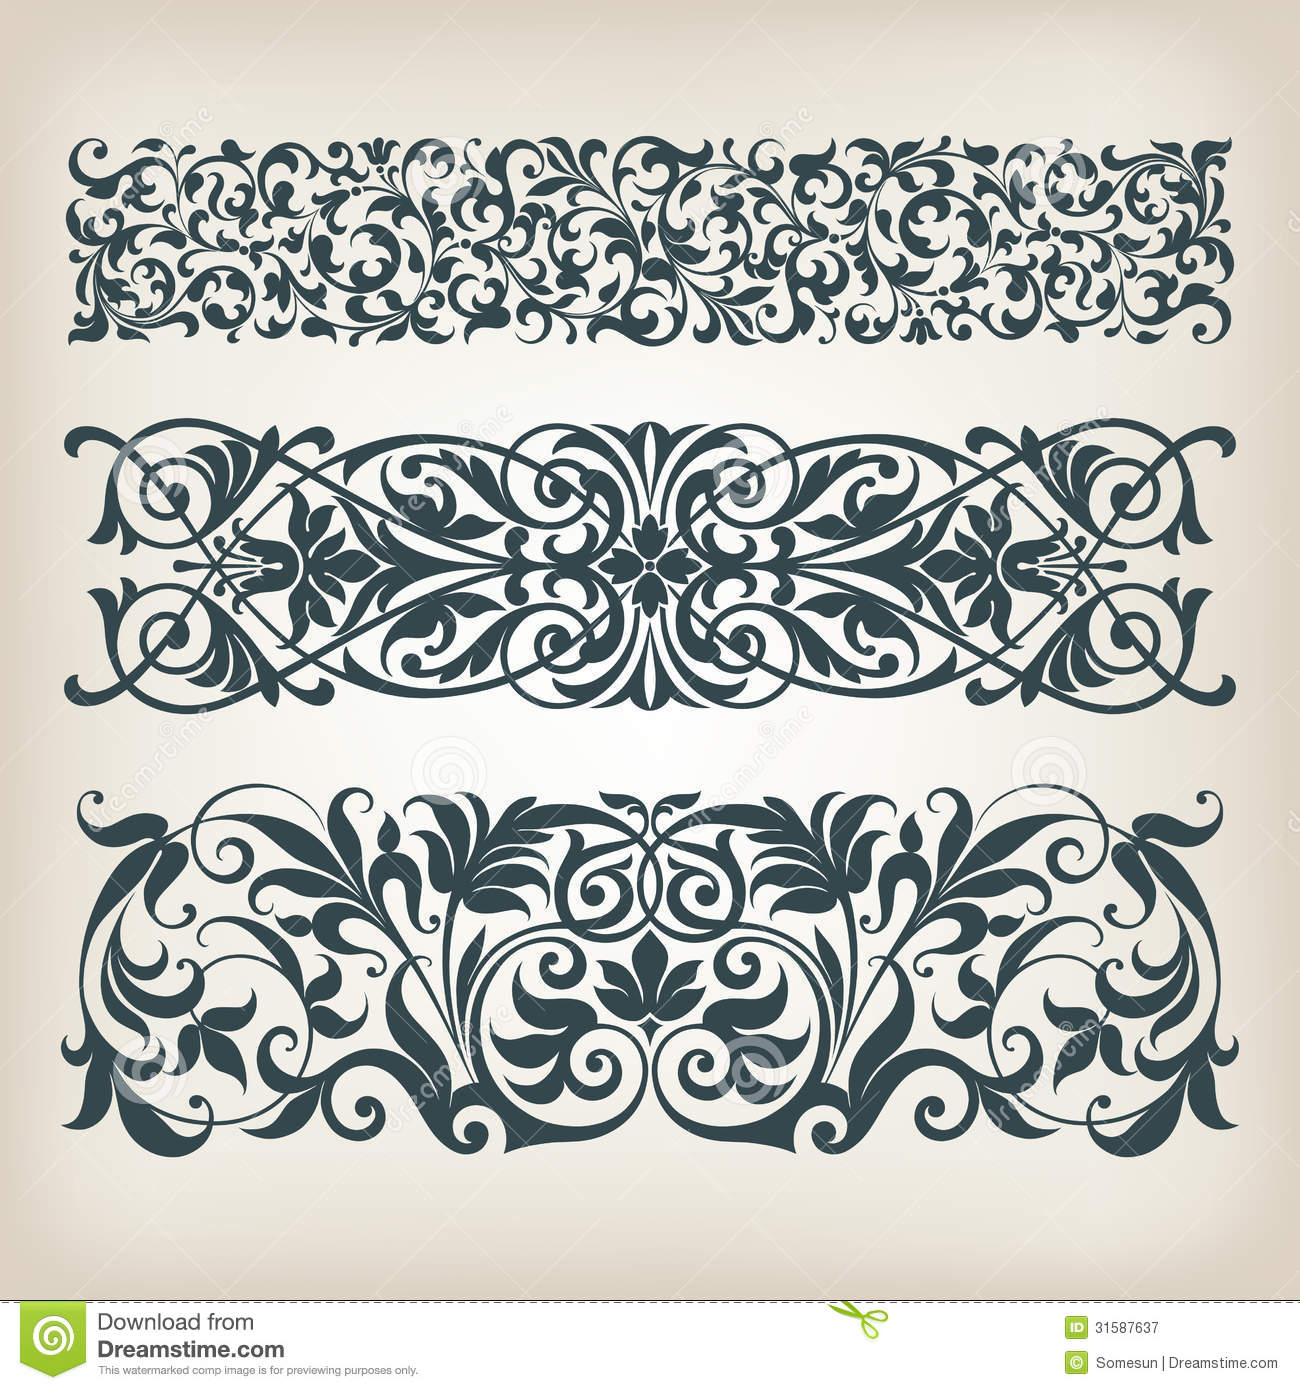 Vintage background ornate baroque pattern vector illustration stock - Vintage Set Border Frame Ornate Scroll Calligraphy Vector Royalty Free Stock Photography